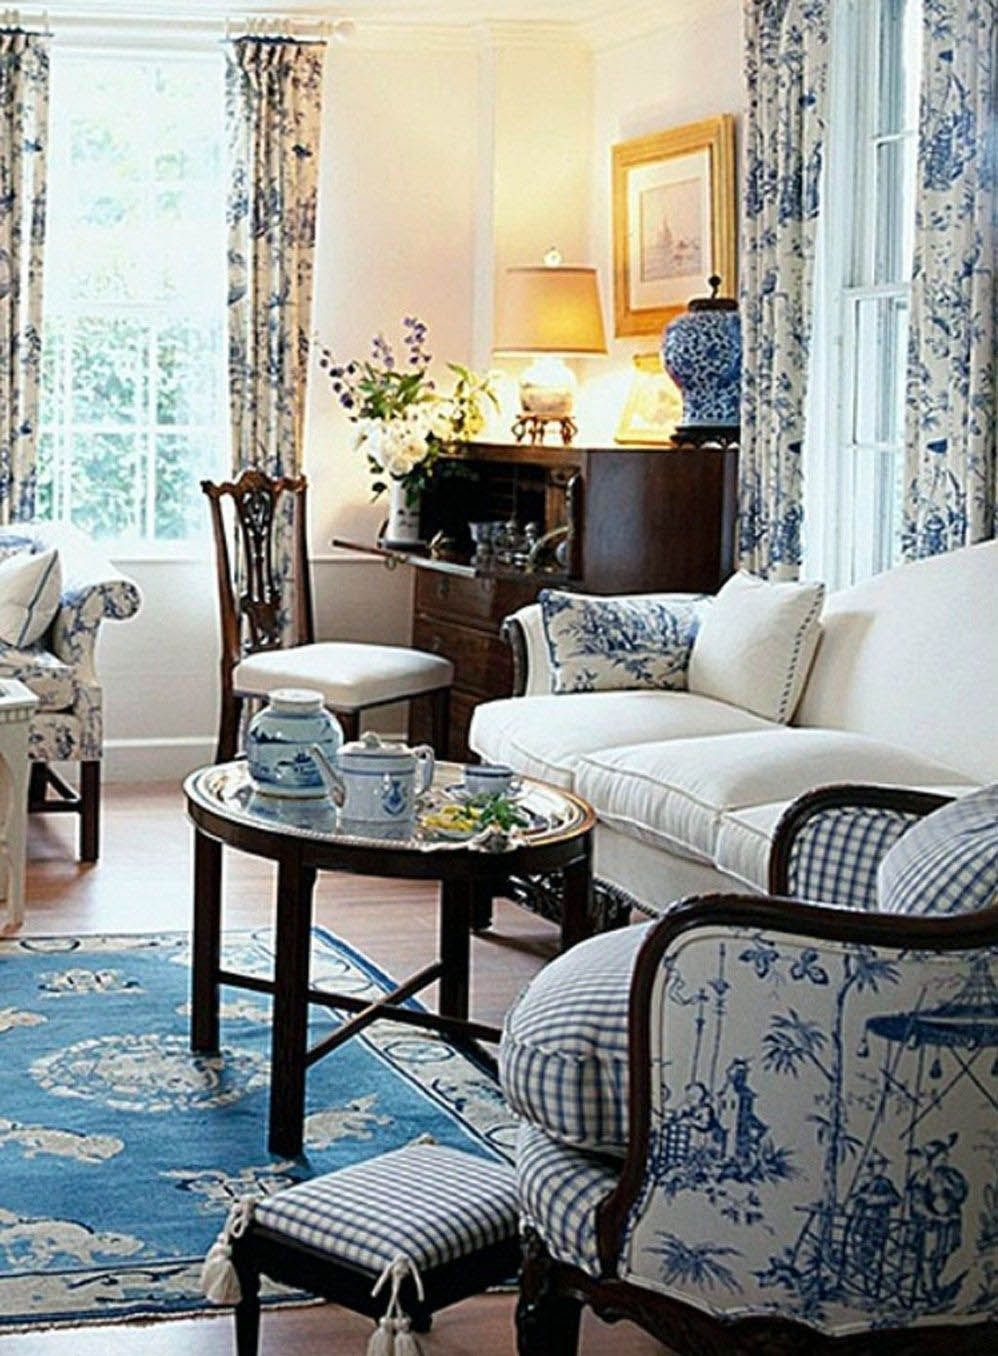 Cozy english country cottage living room for your home